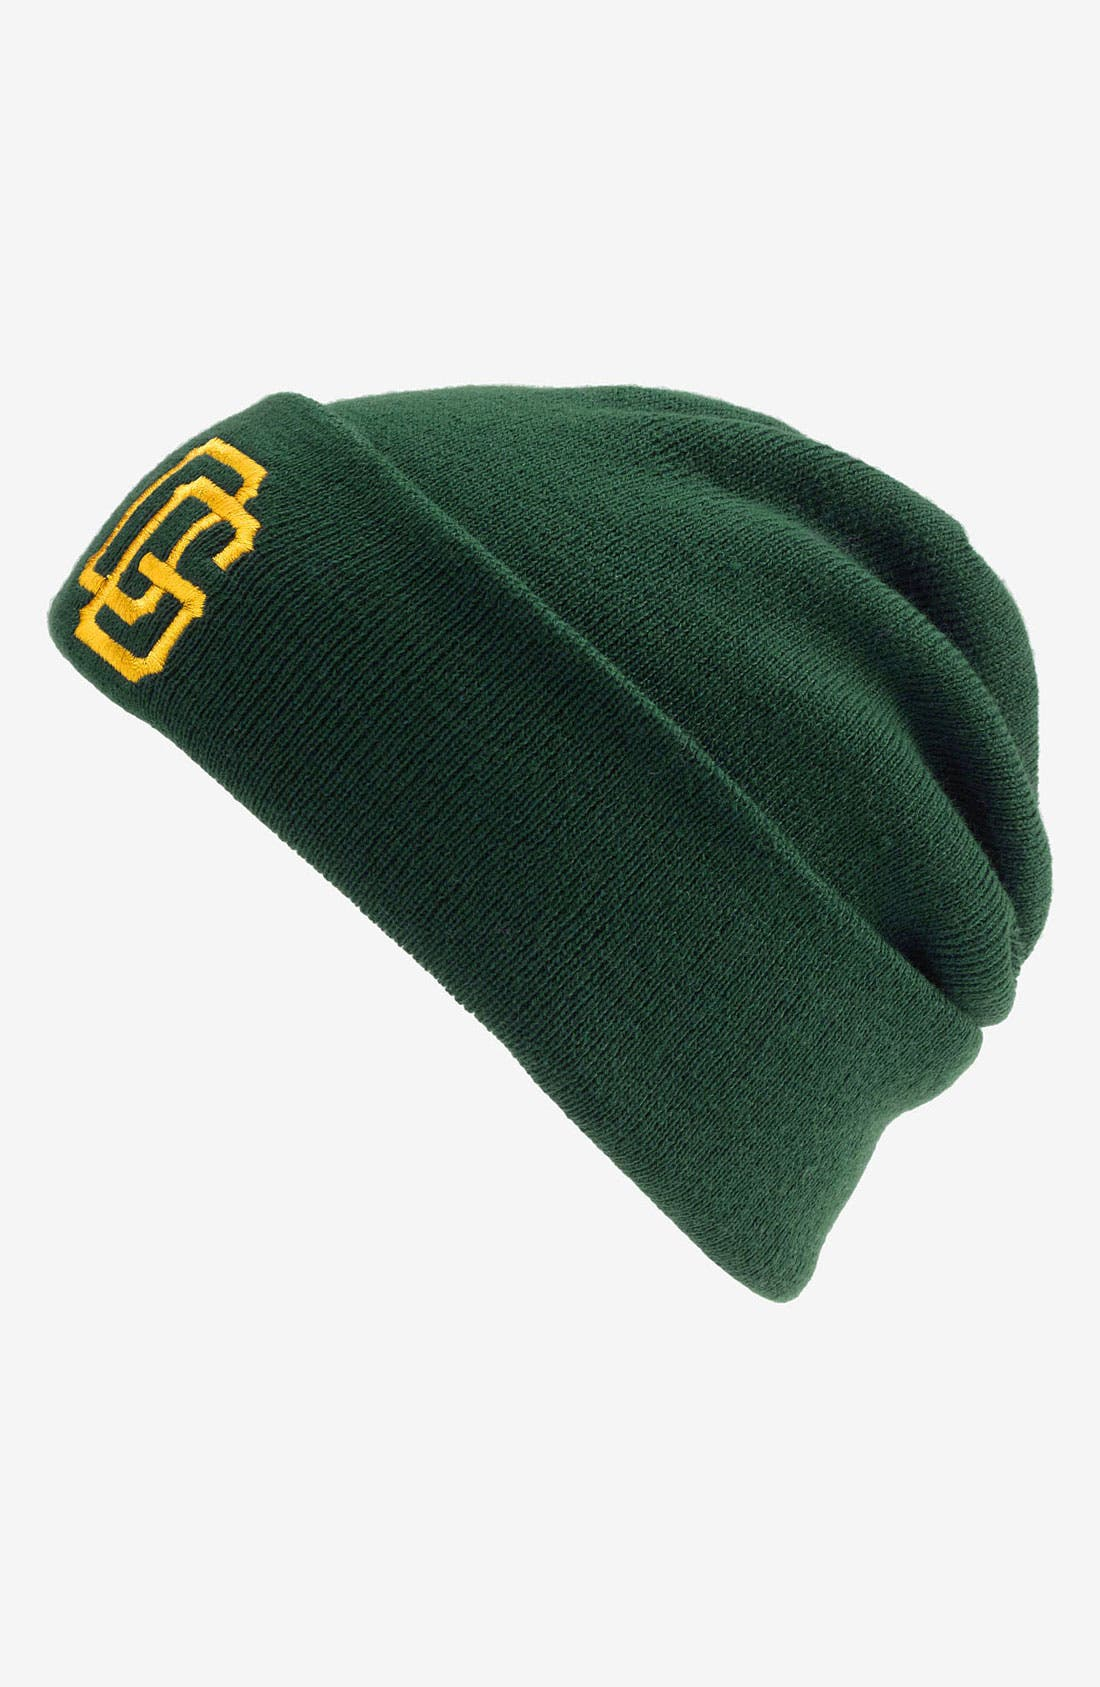 Alternate Image 1 Selected - Obey 'Double OG' Knit Cap